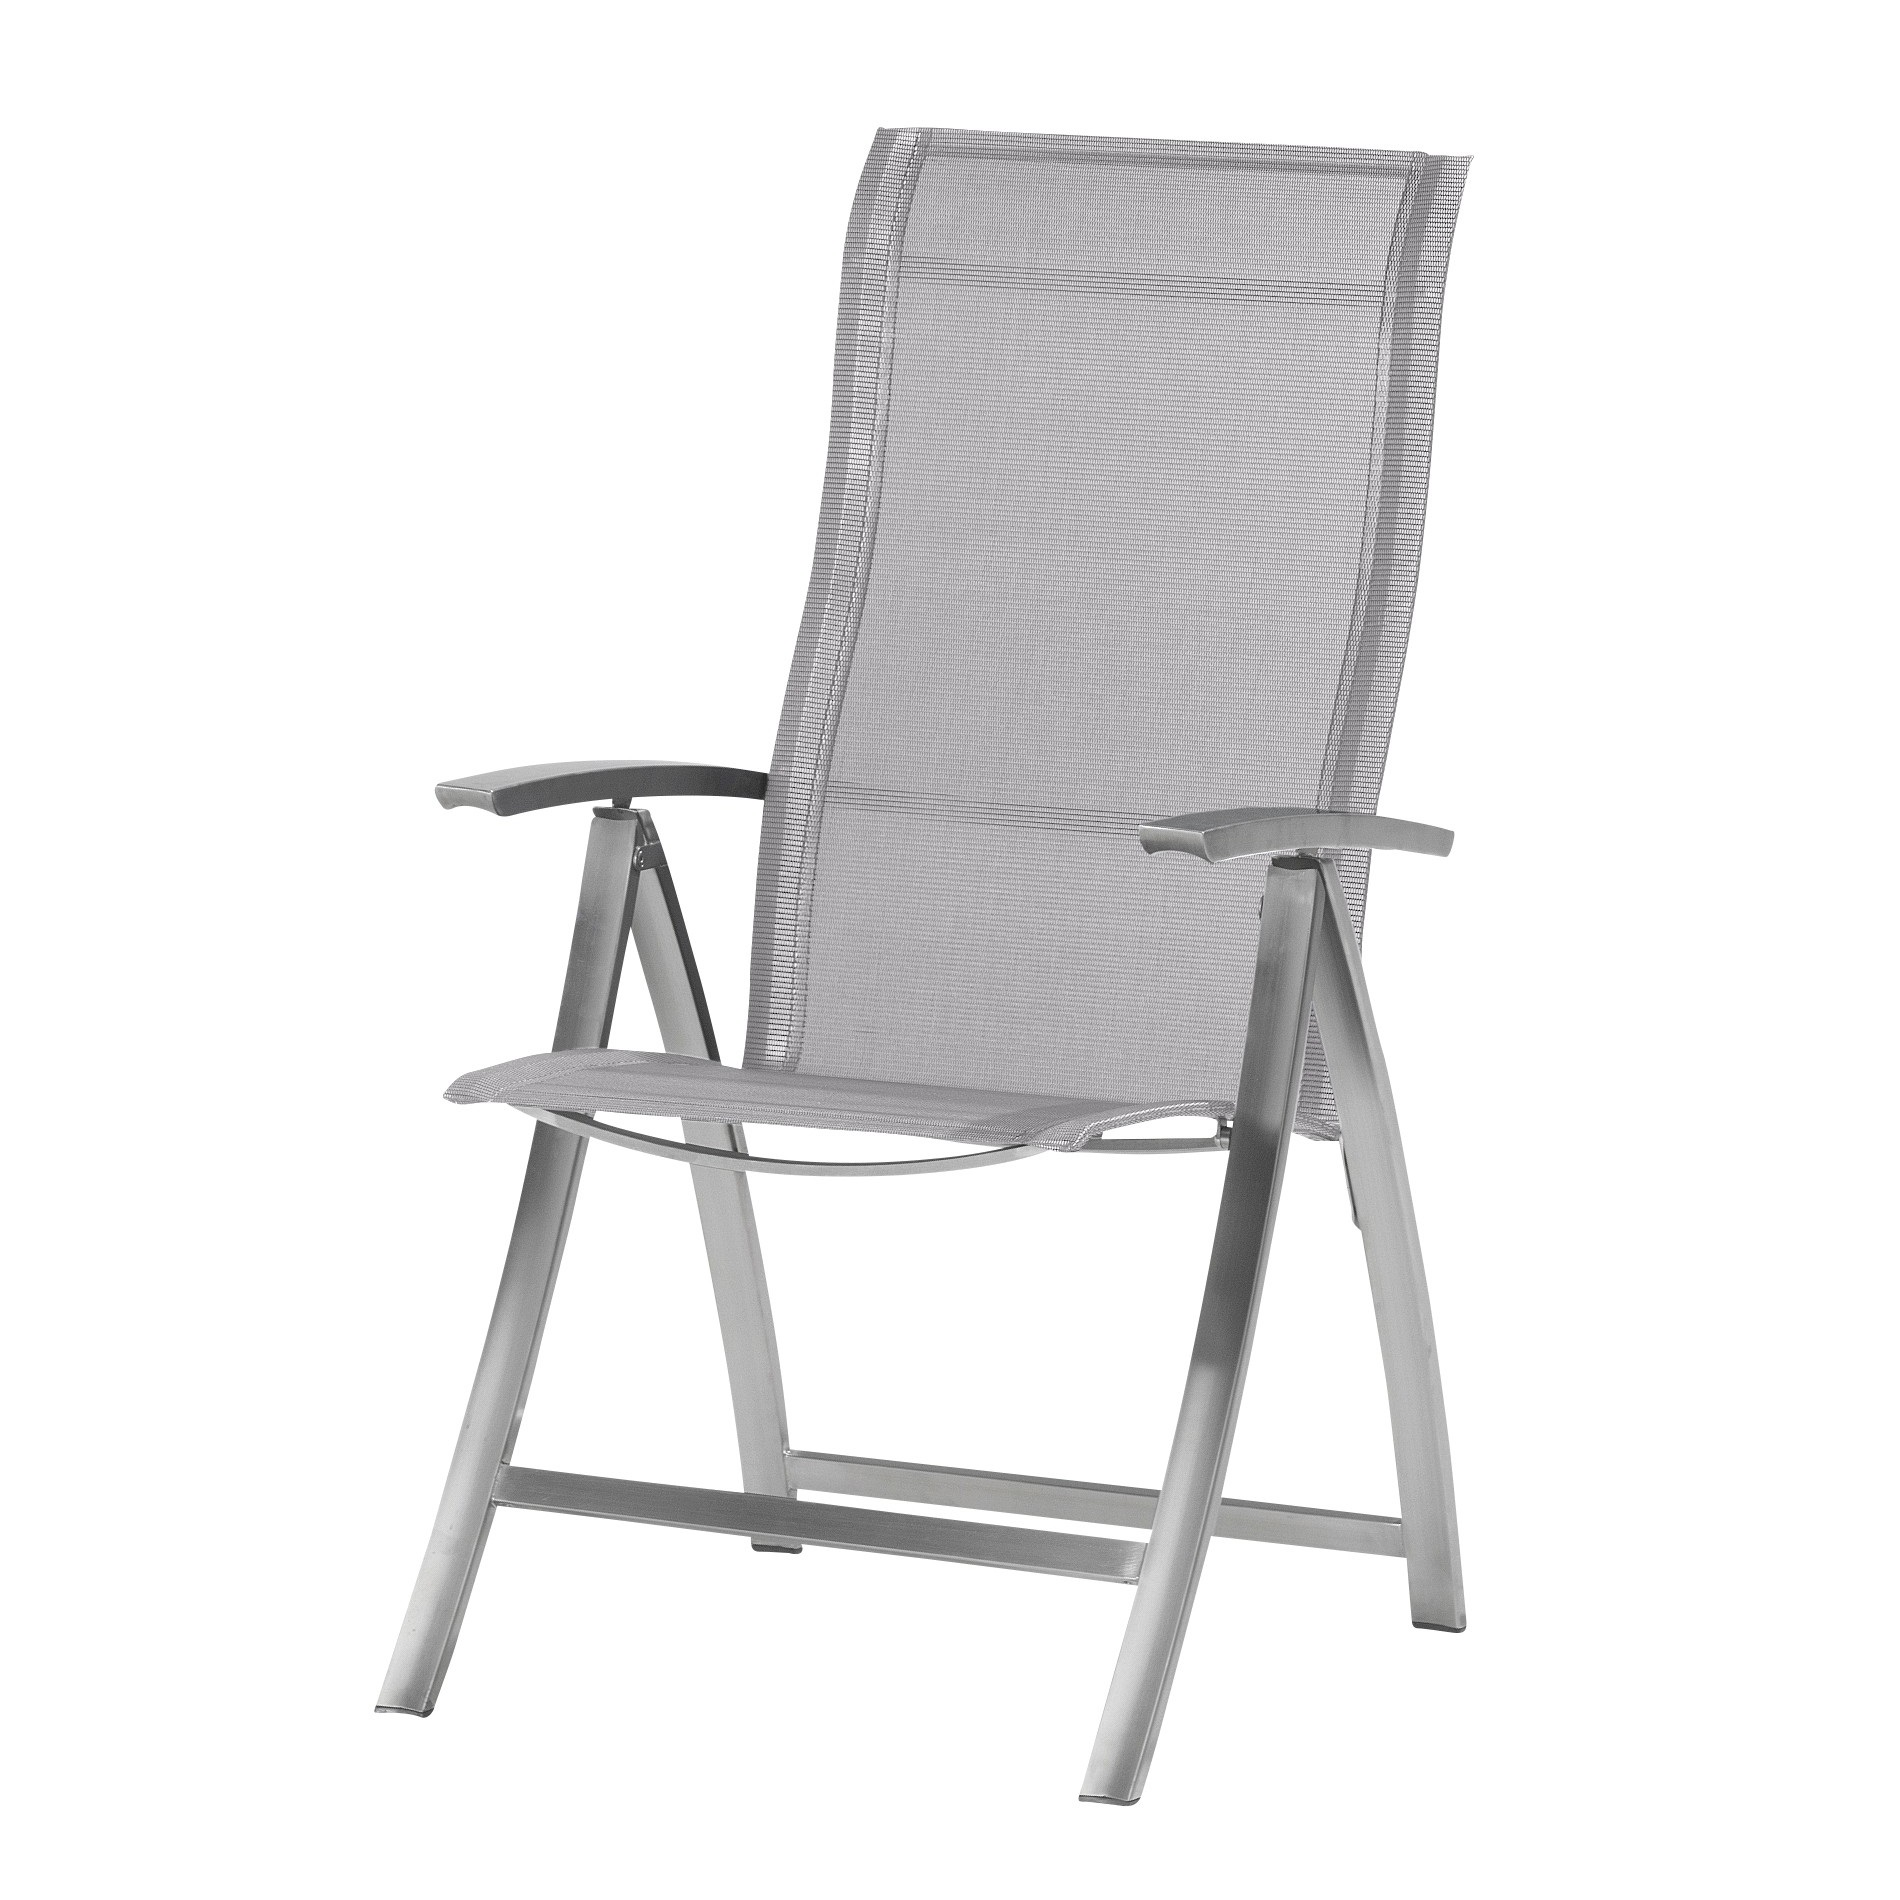 4 Seasons Slimm Adjustable chair stainless Steel - Ashgrey